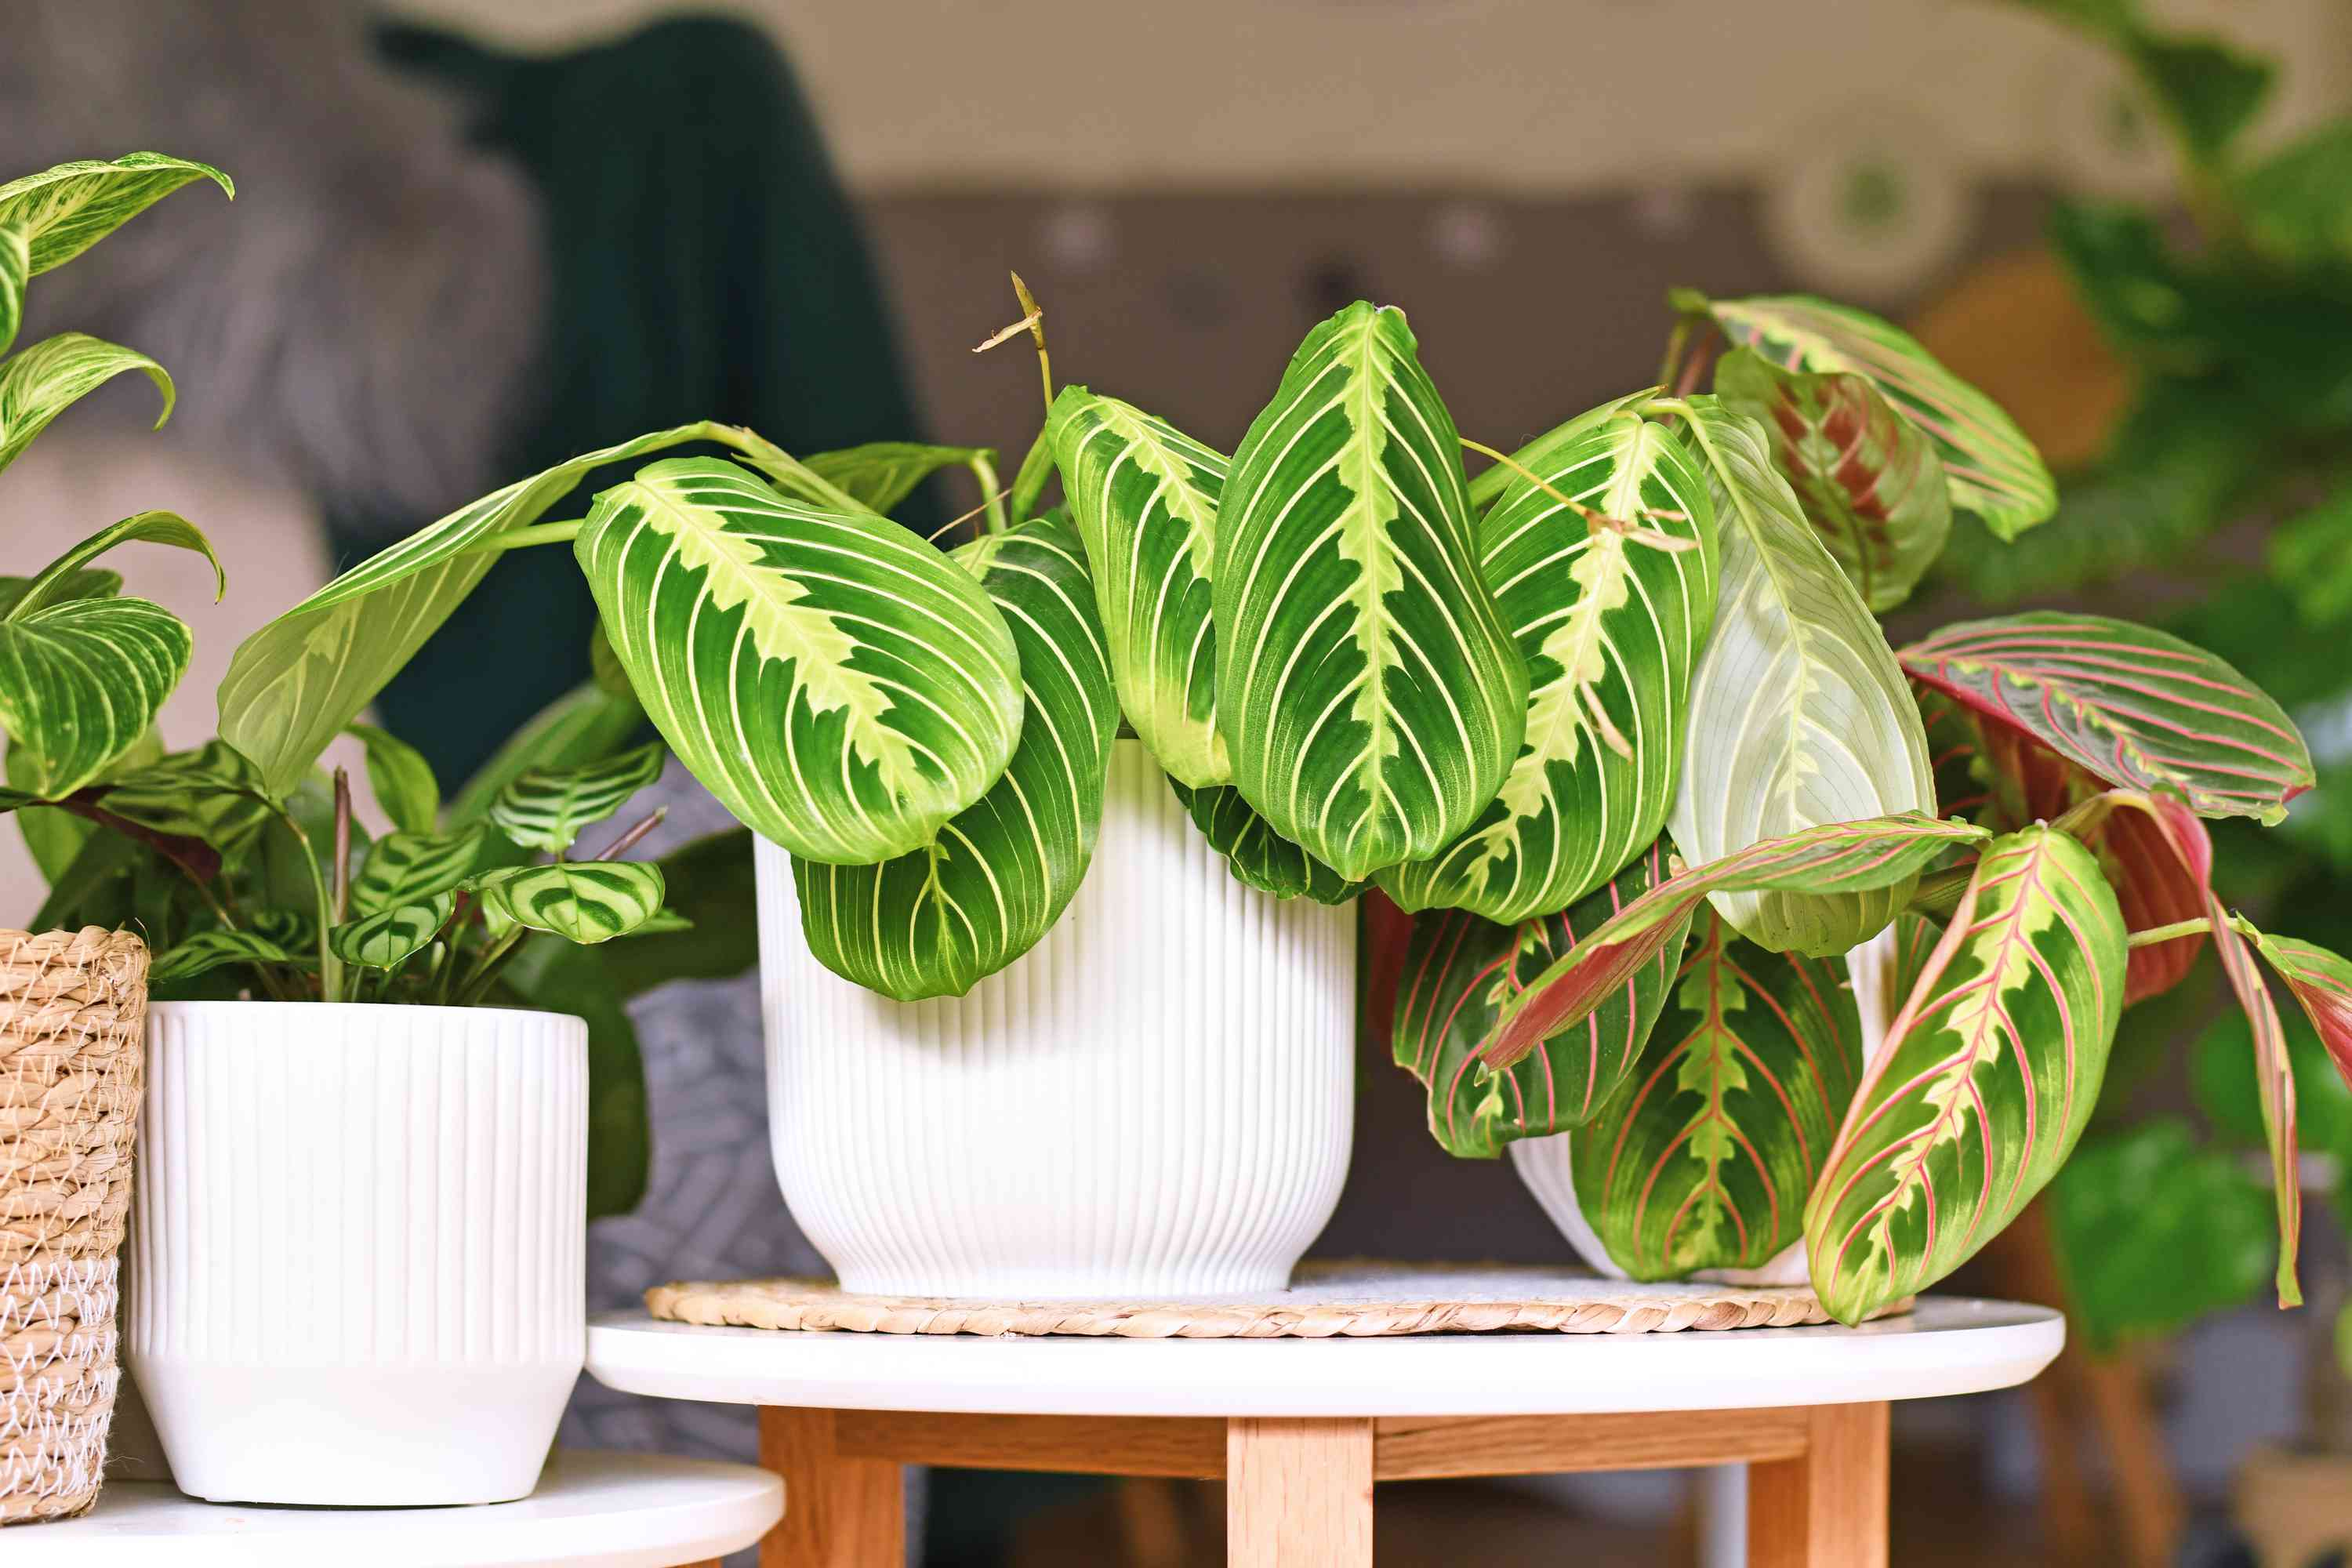 maranta plant with green and light green and red stripey leaves in white pot on small white table